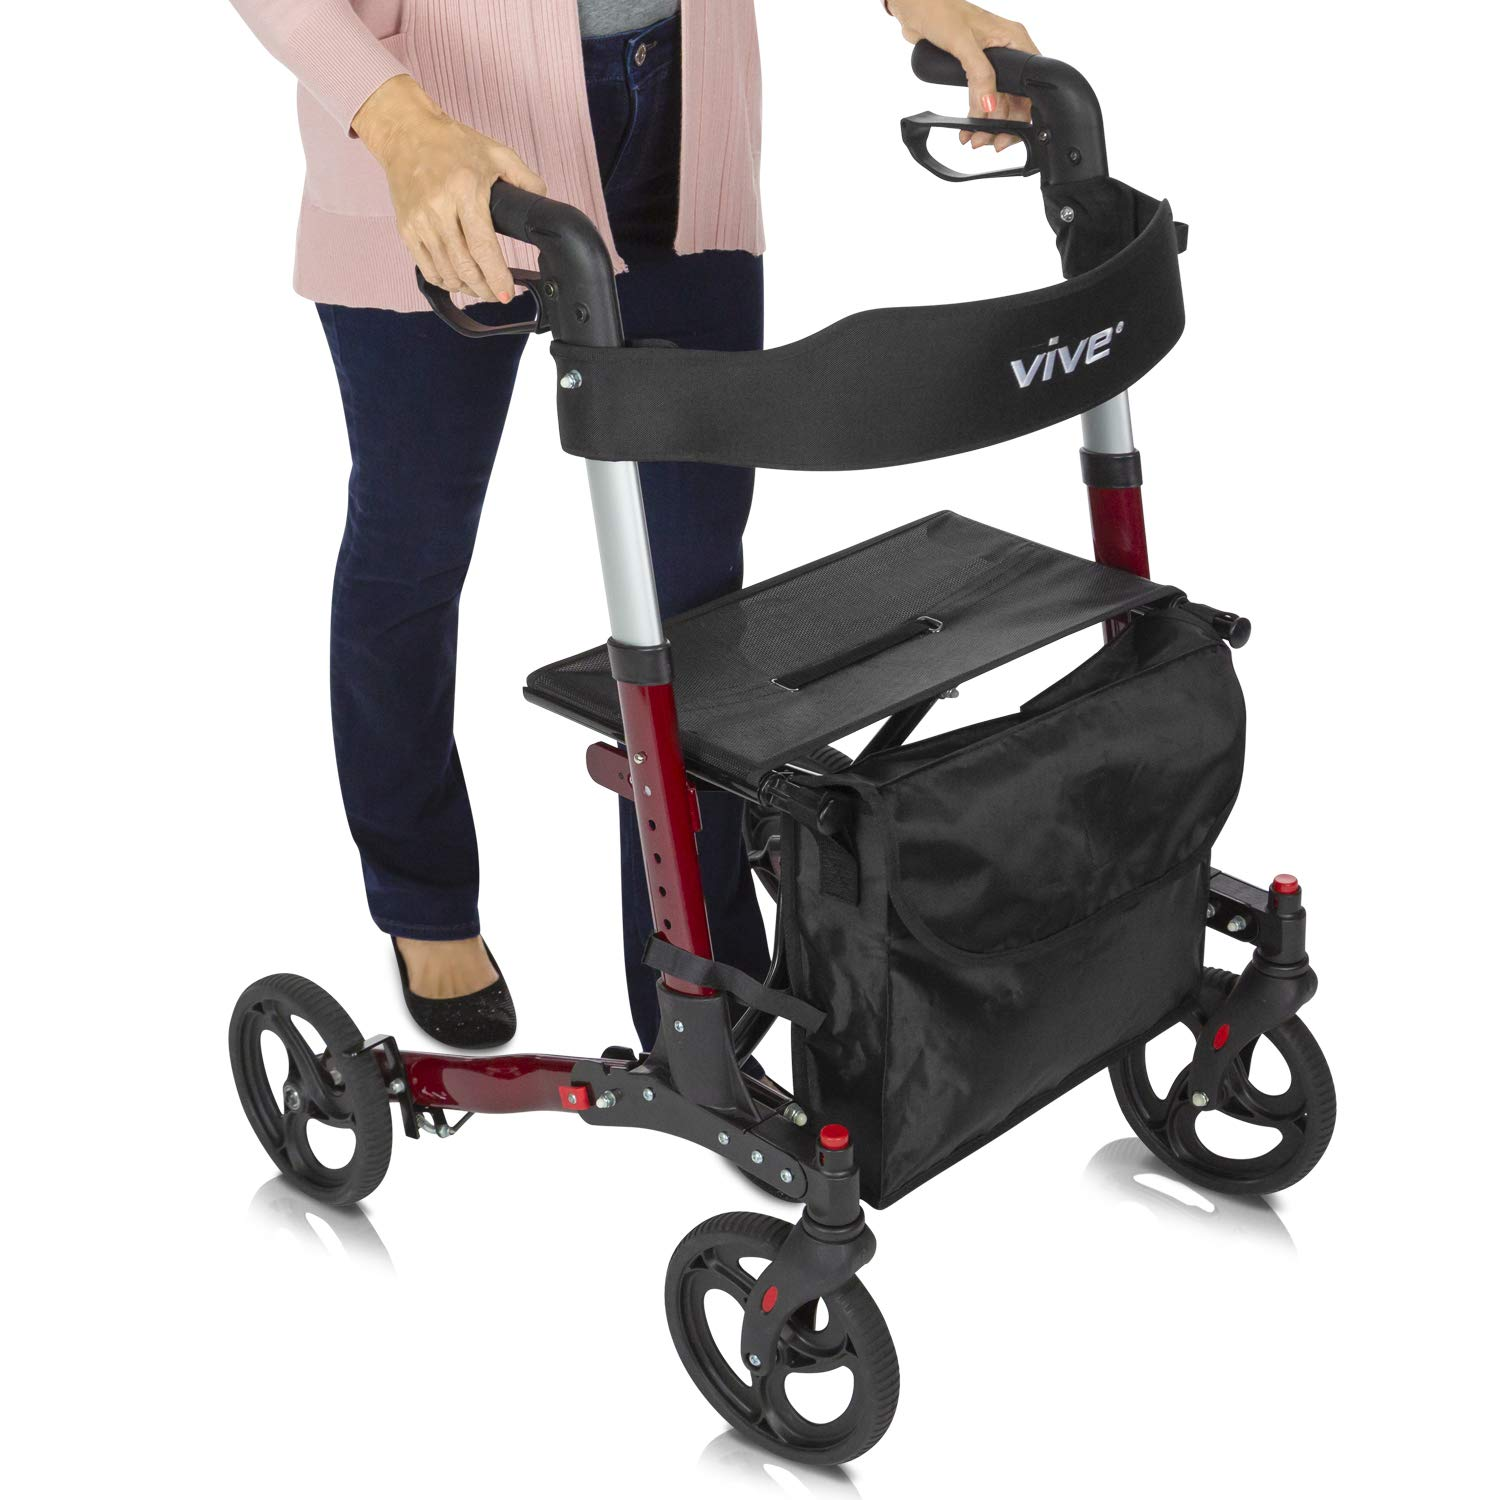 Vive Folding Rollator Walker Transport